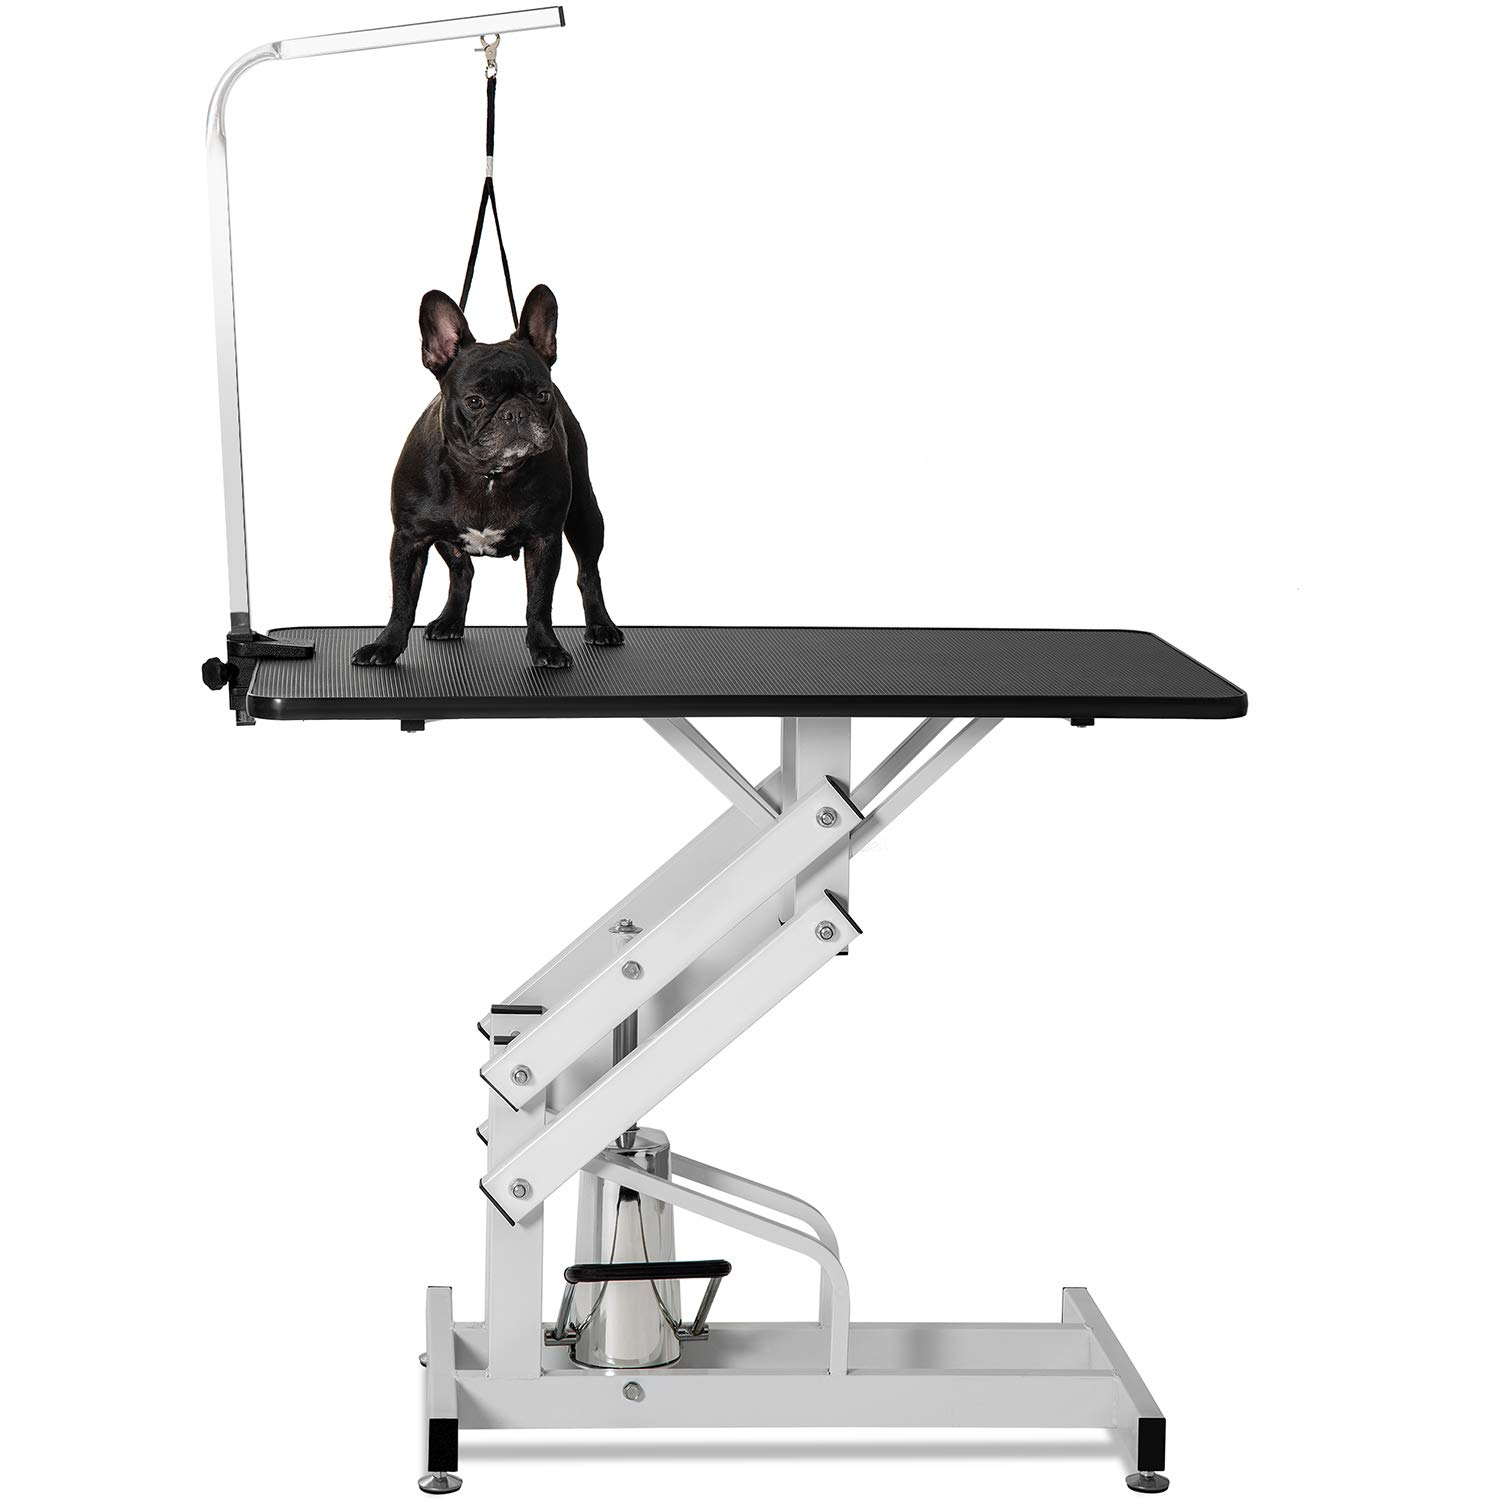 Dog Grooming Table Hydraulic,JULYFOX Z-Lift Pet Grooming Table with Clamp On Arm Height Adjustable 330 LB Heavy Duty Strong Professional Groomers Helper for Small Medium Large Dogs Cats